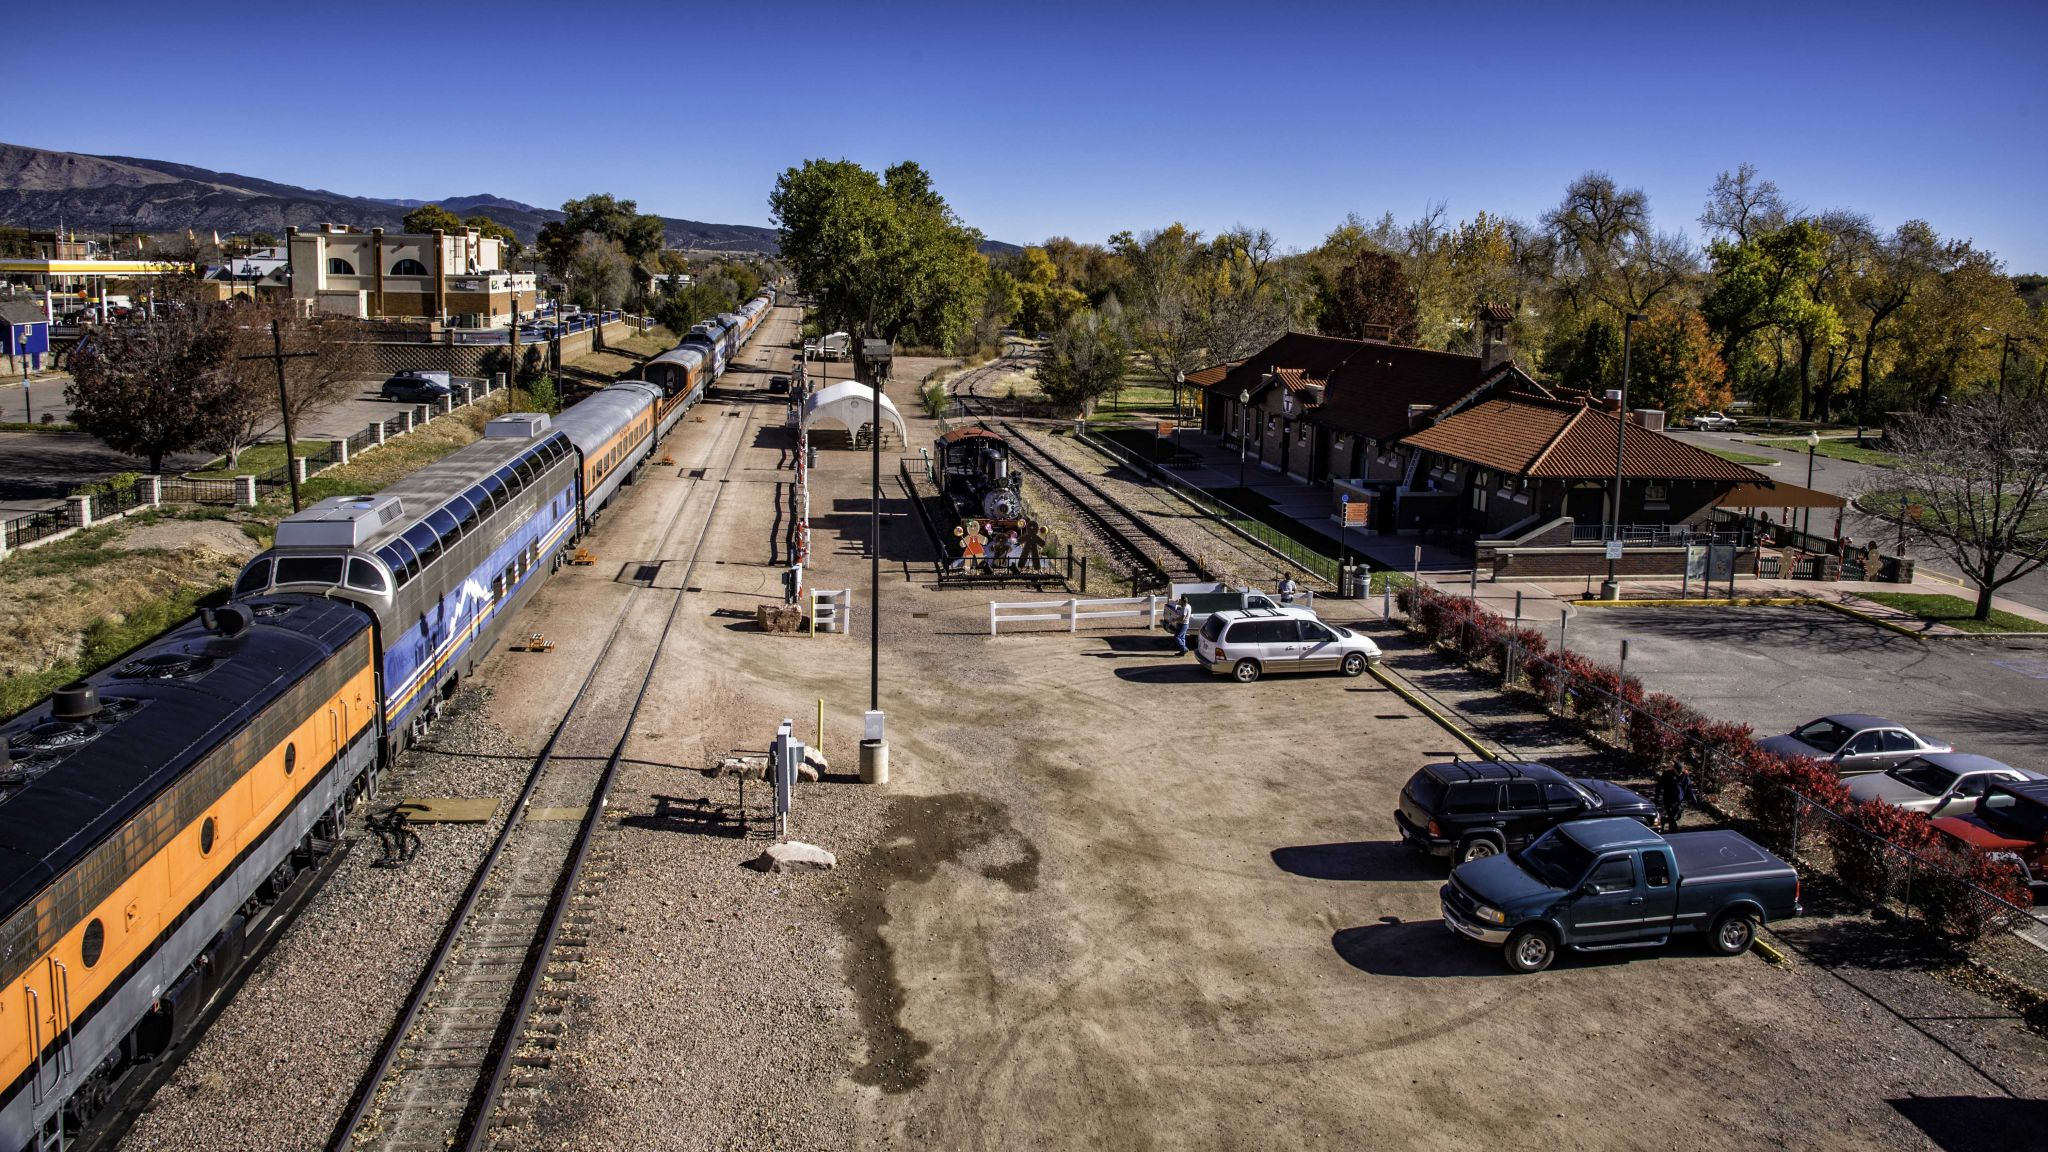 Royal Gorge Route Train Station, USA